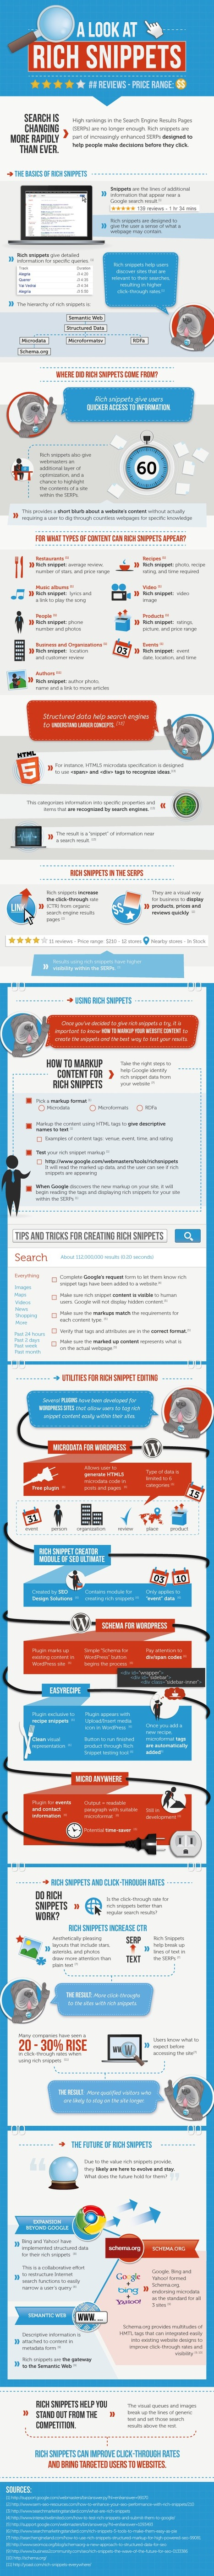 A Visual Guide to Rich Snippets | Time to Learn | Scoop.it